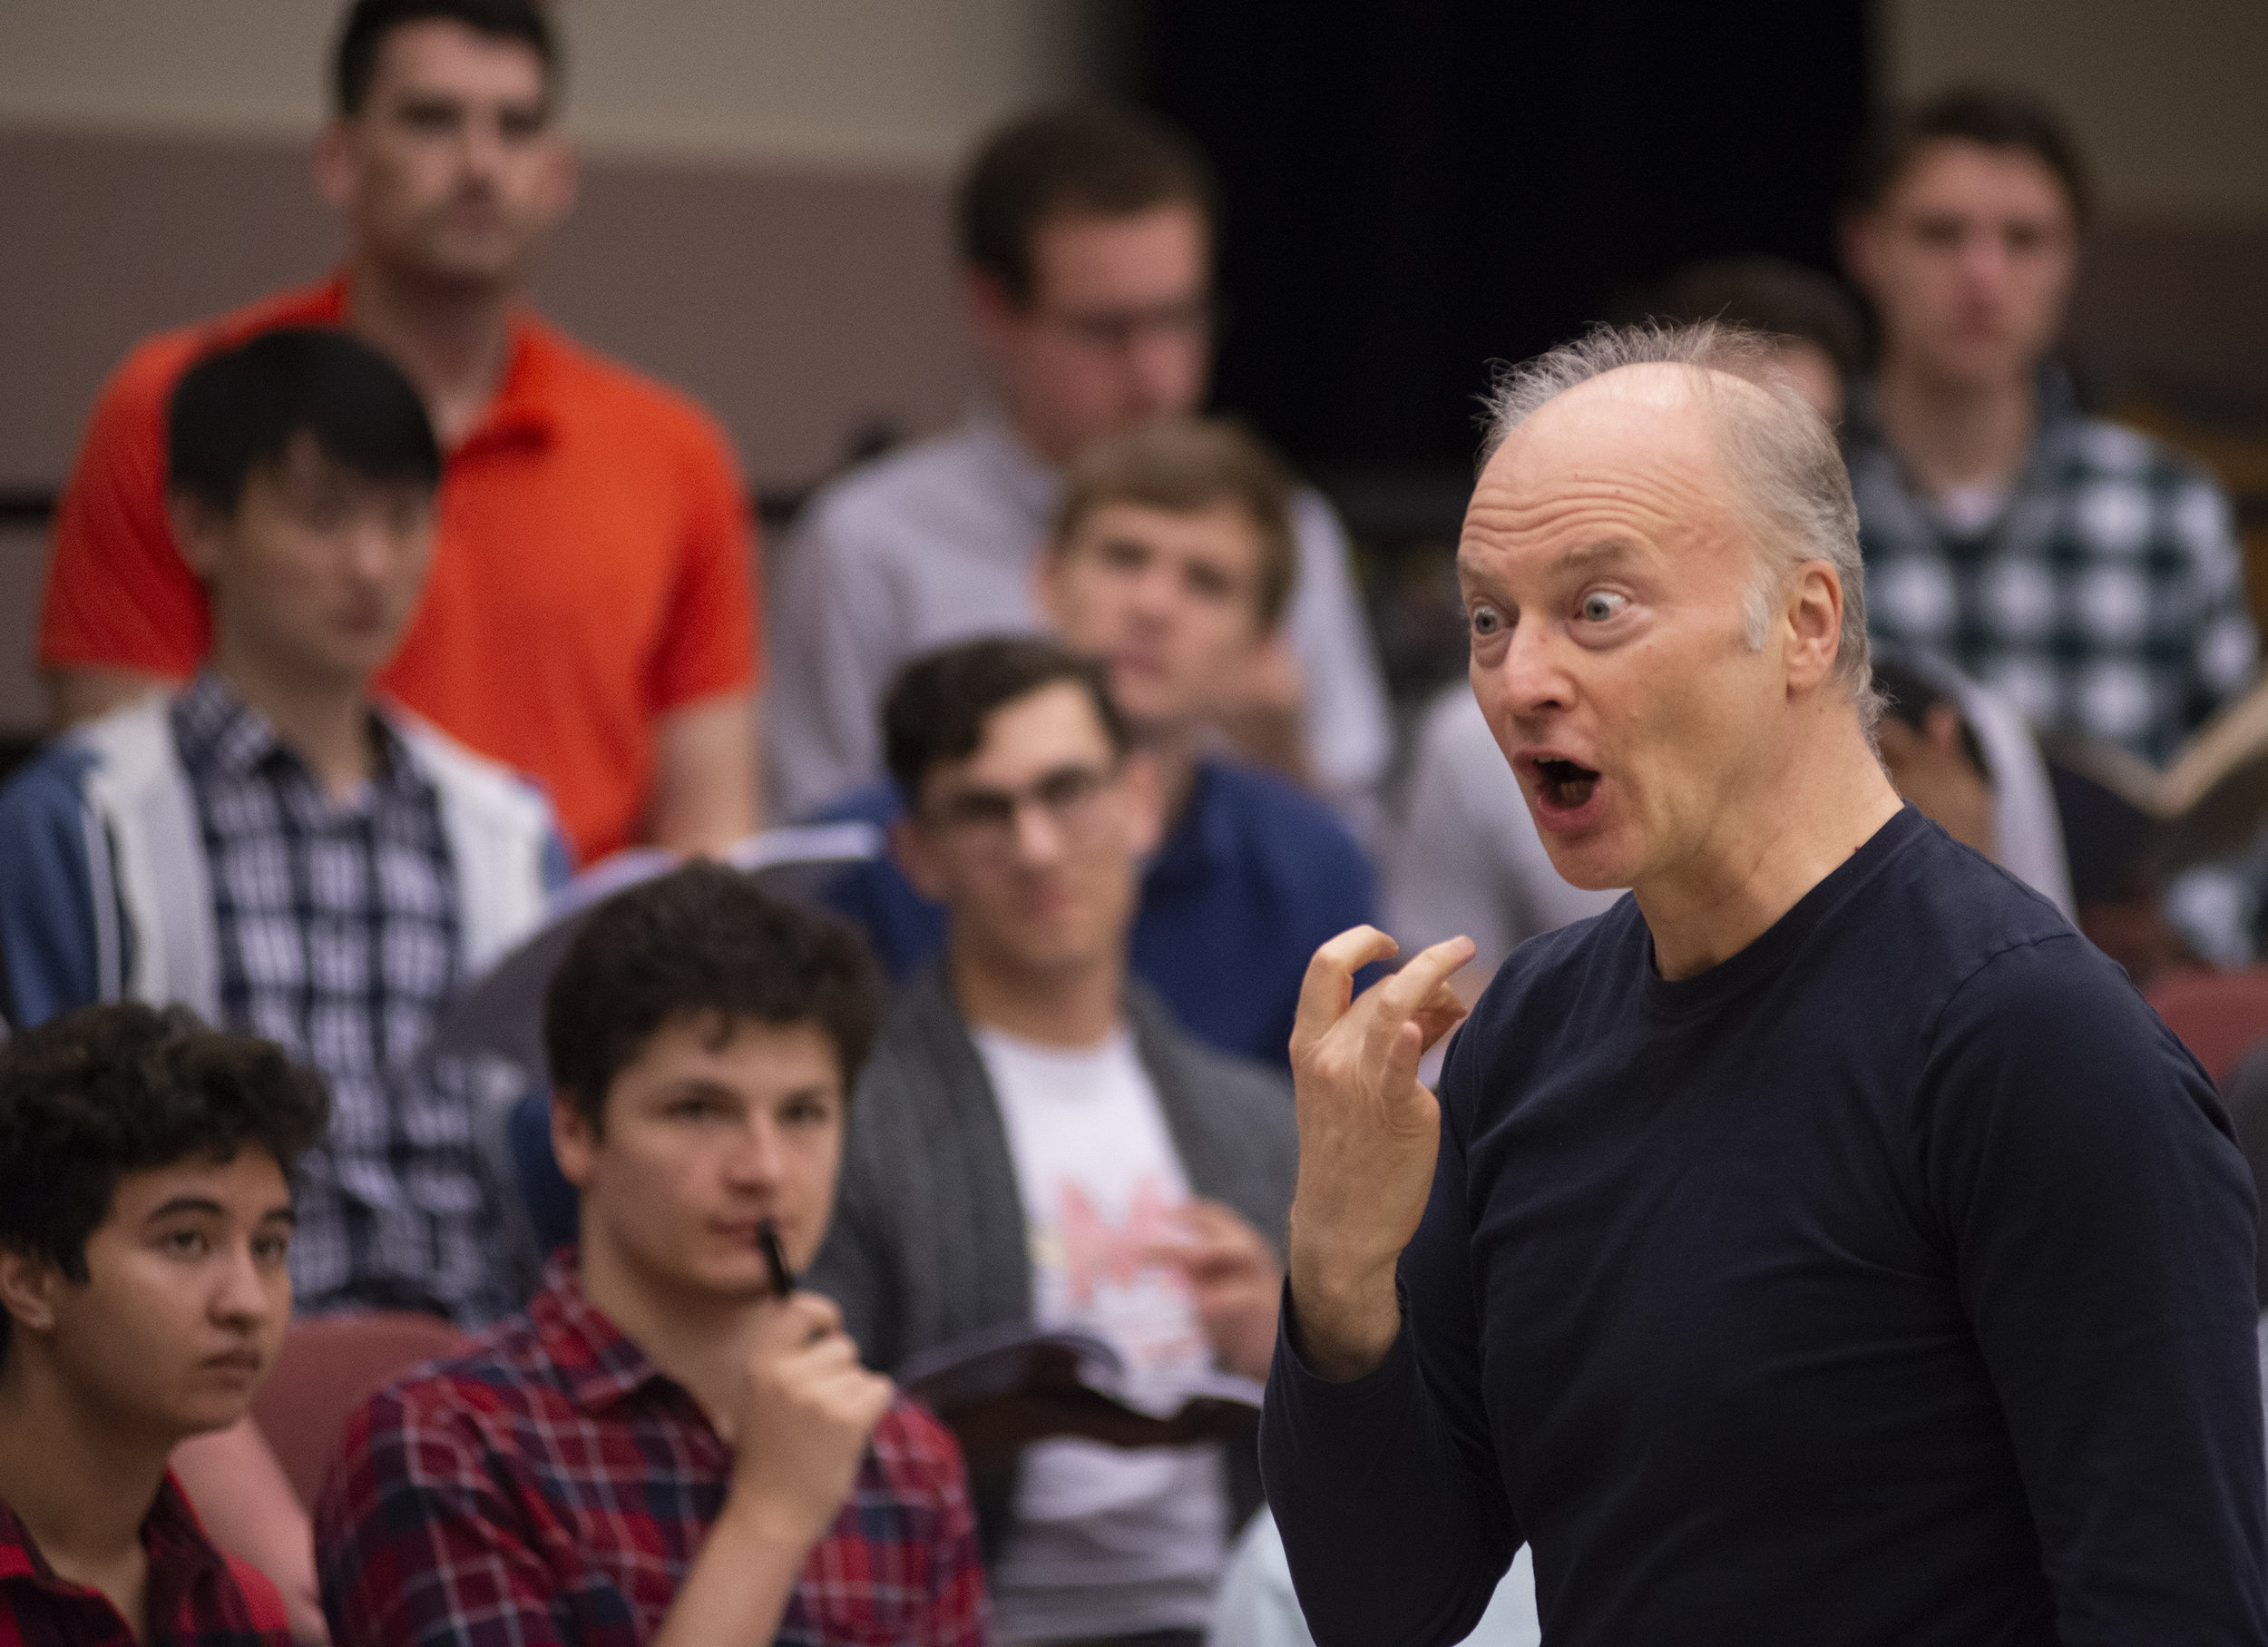 """Gianandrea Noseda."" Photo by David Andrews, property of The University of Maryland School of Music, 2019. All Rights Reserved."